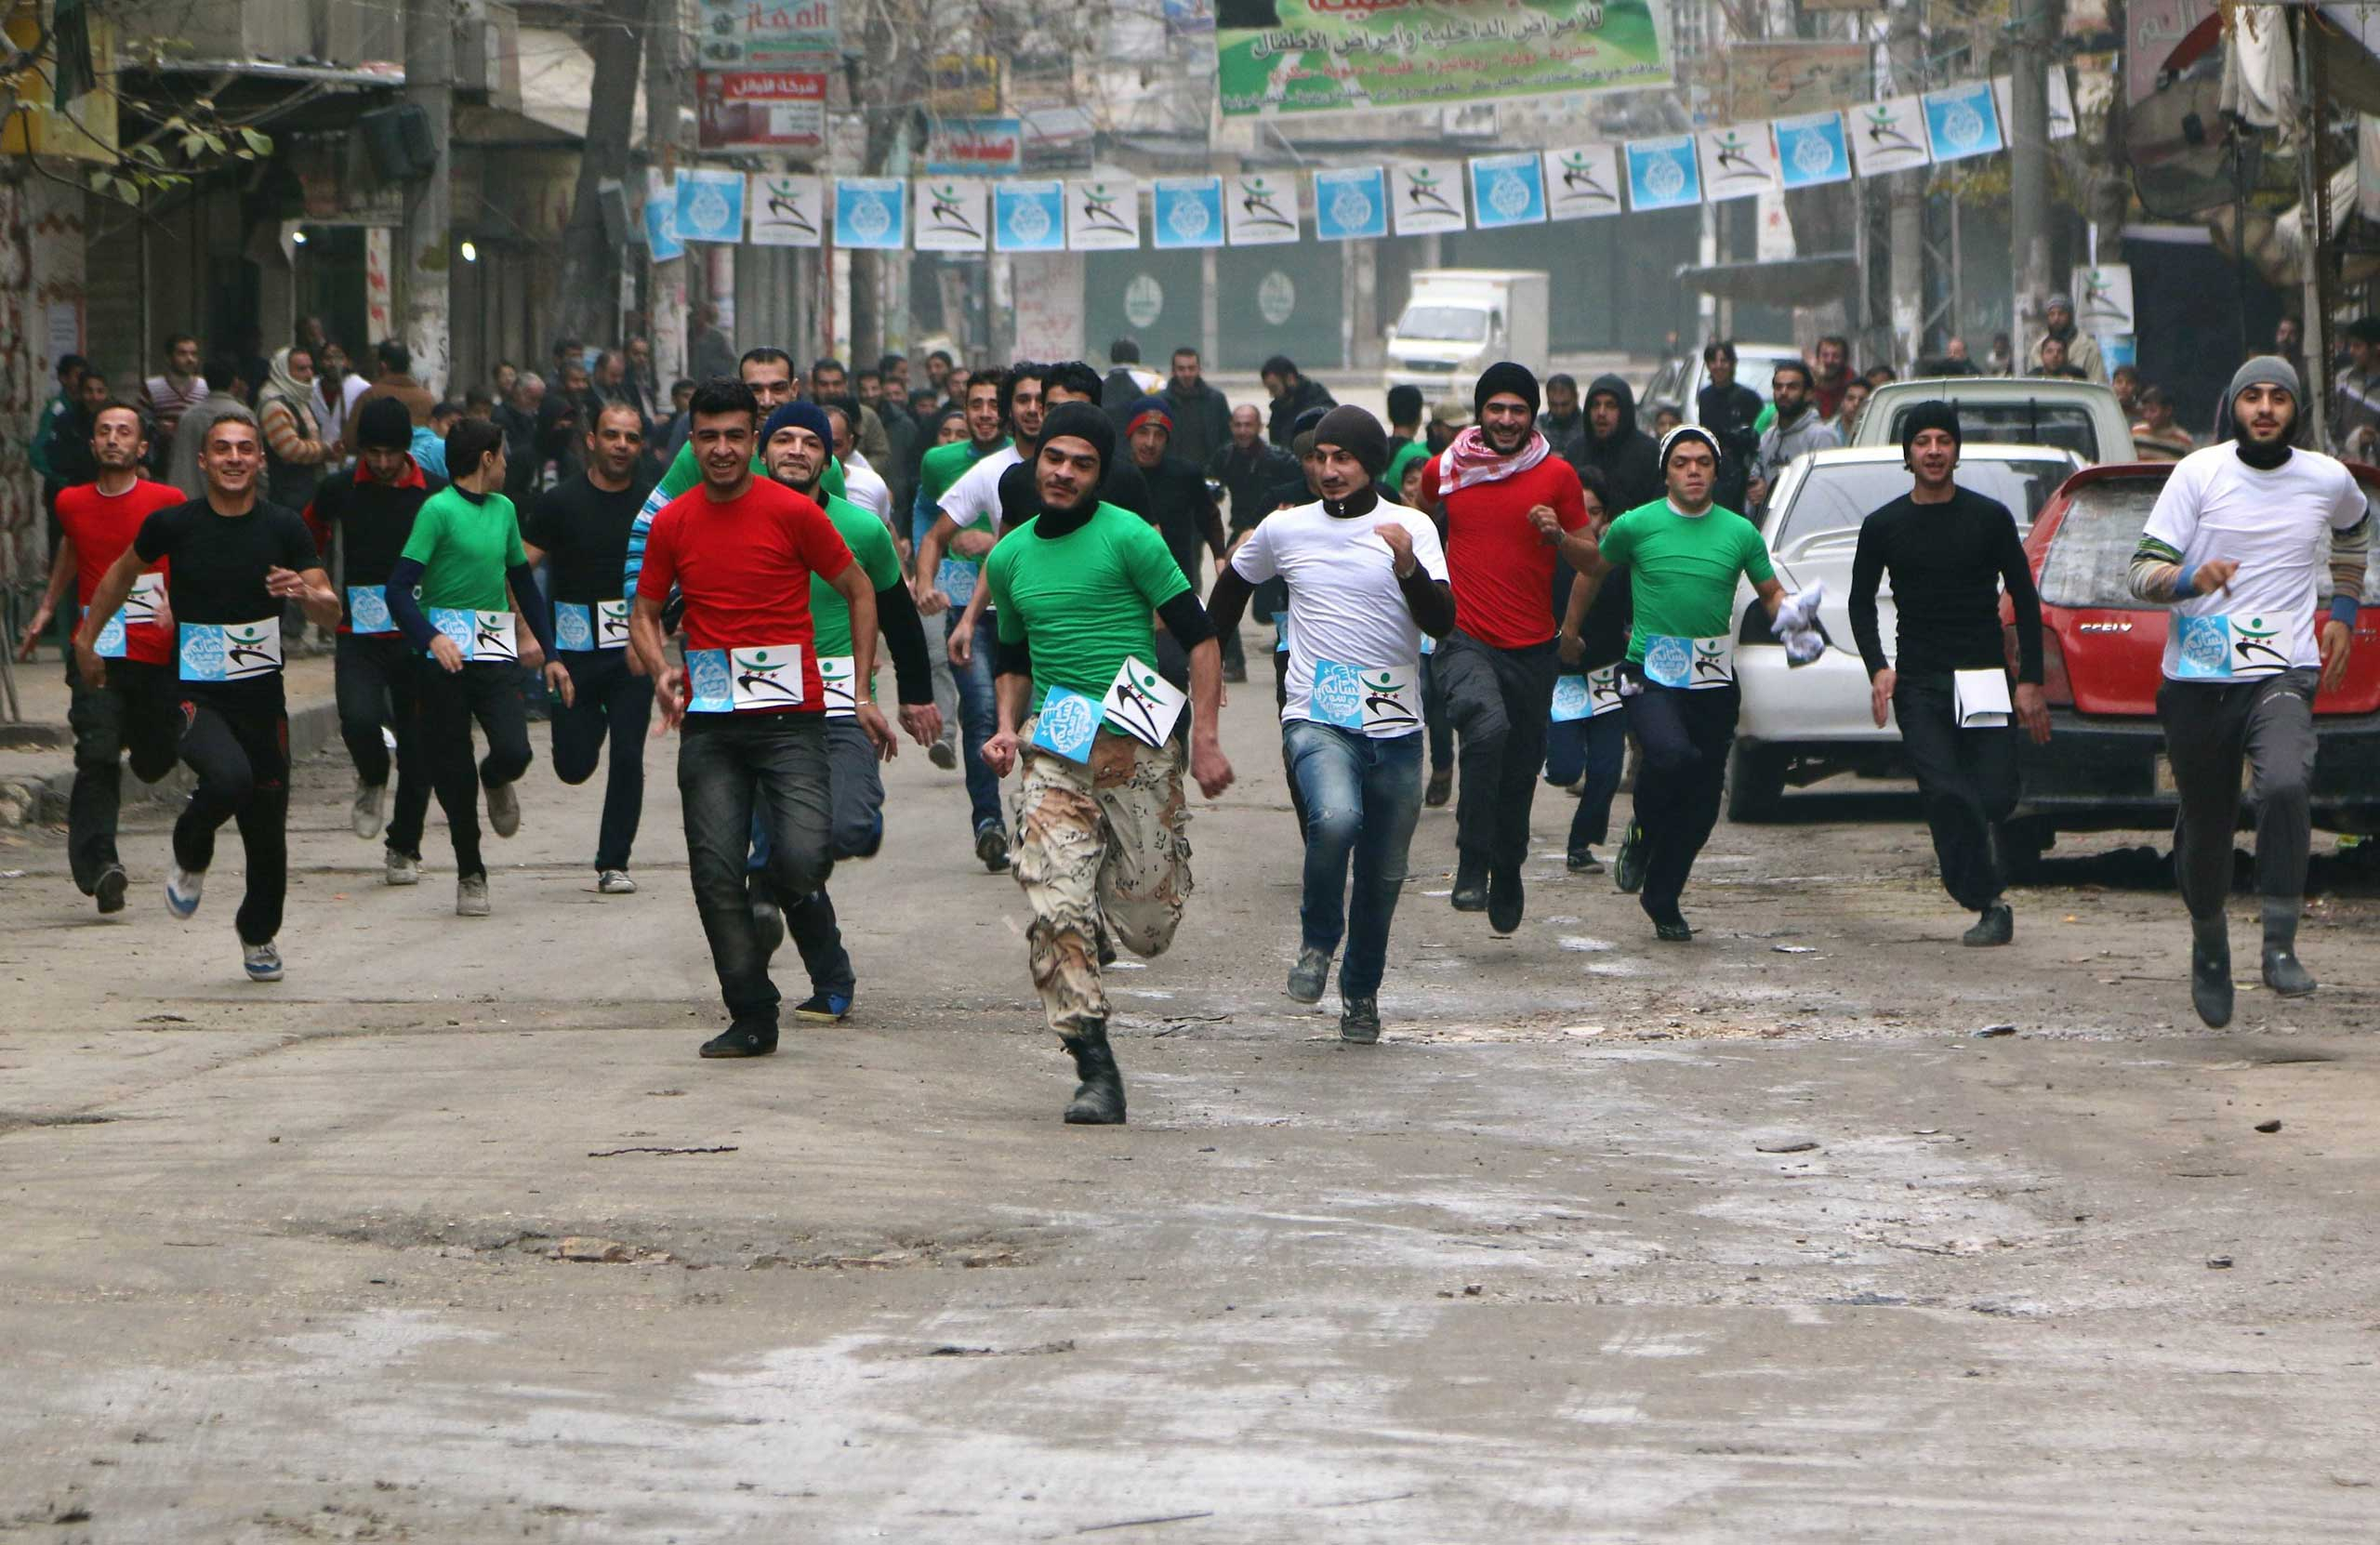 Dec. 2, 2014. Participants compete in a running race along a street in Aleppo's Bustan al-Qasr neighborhood, a rebel-controlled area in Syria.